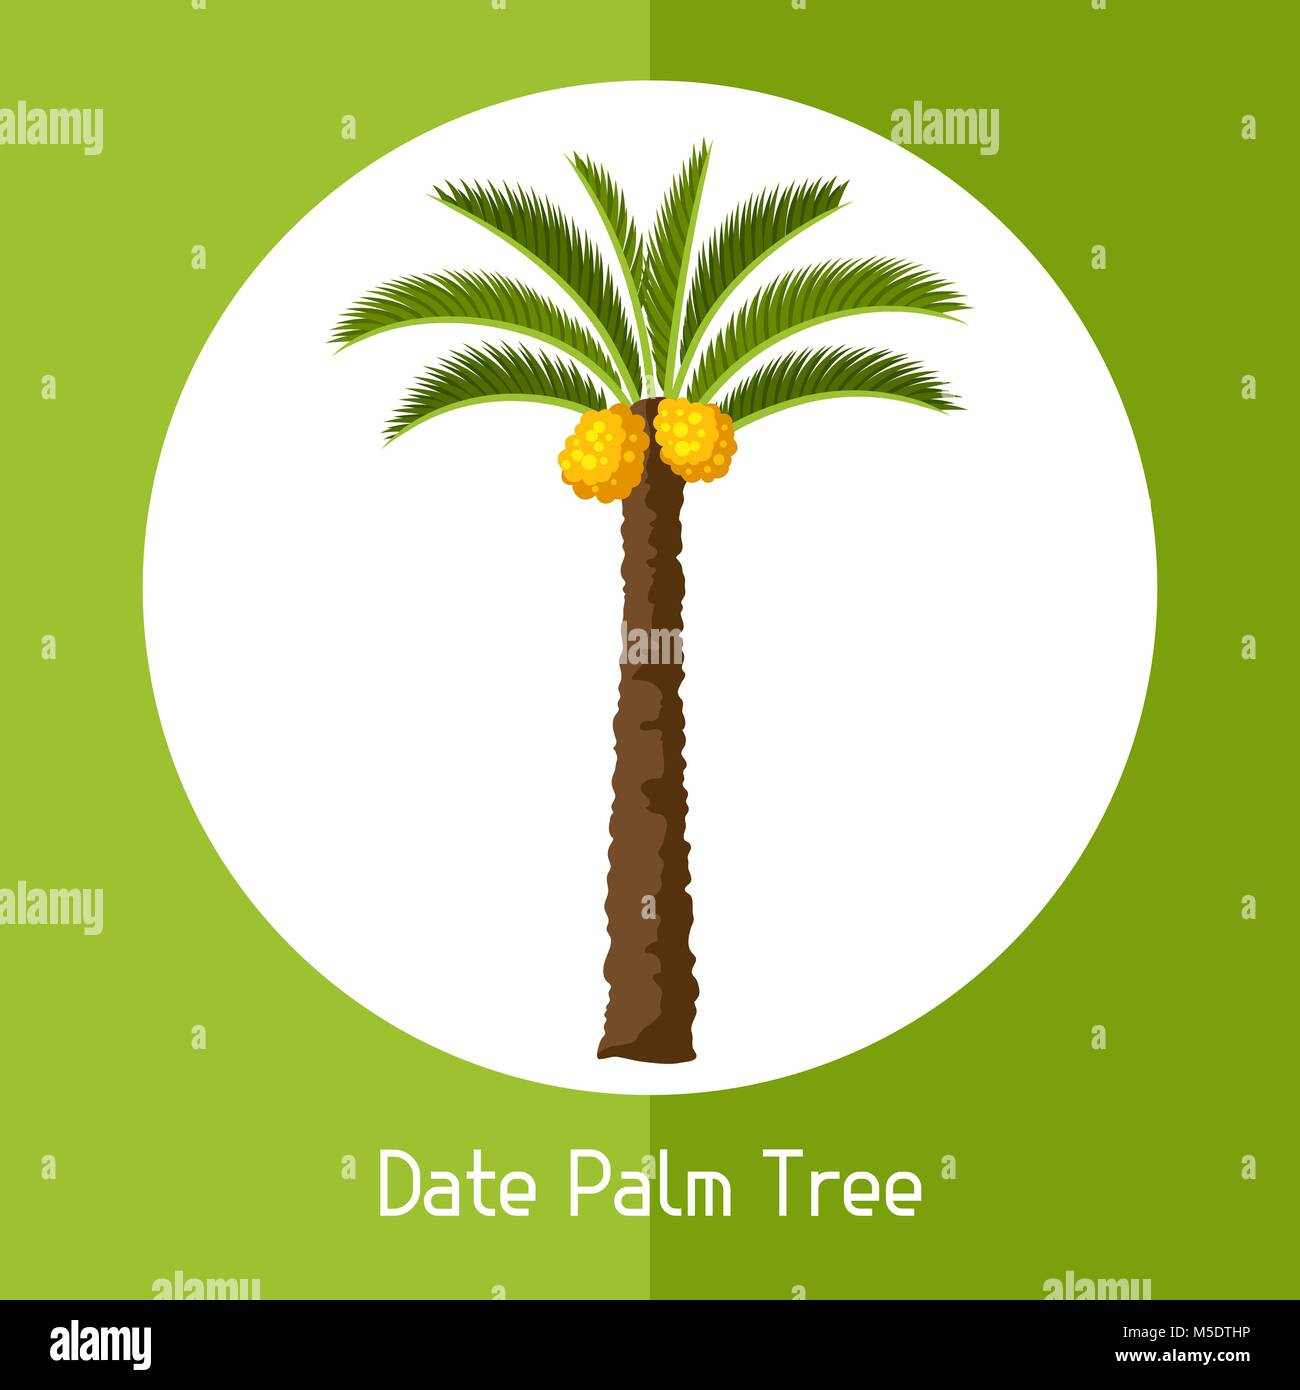 Date palm tree. Illustration of exotic tropical plant - Stock Vector